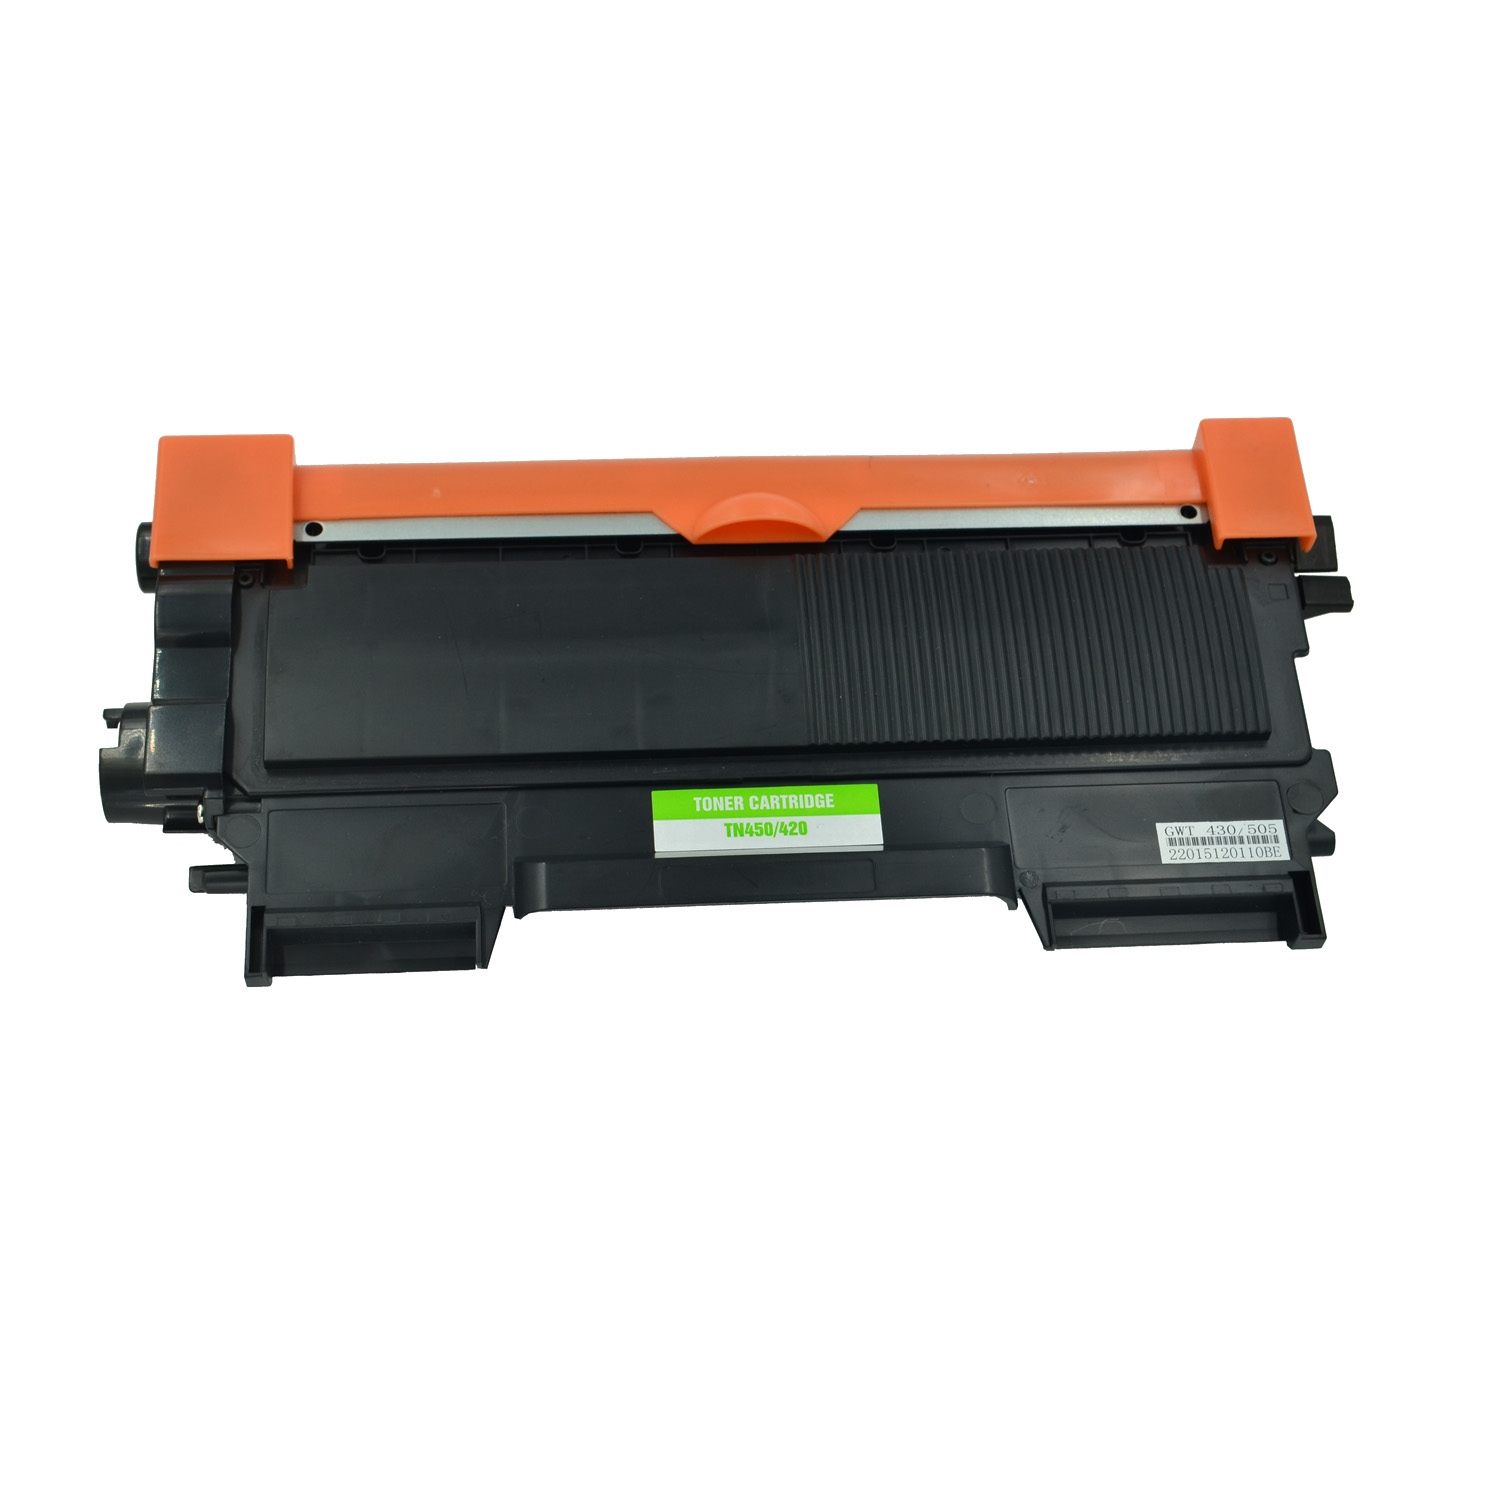 3 Pack High Yield Toner Compatible for Brother TN450 TN-450 MFC-7360N HL-2280DW